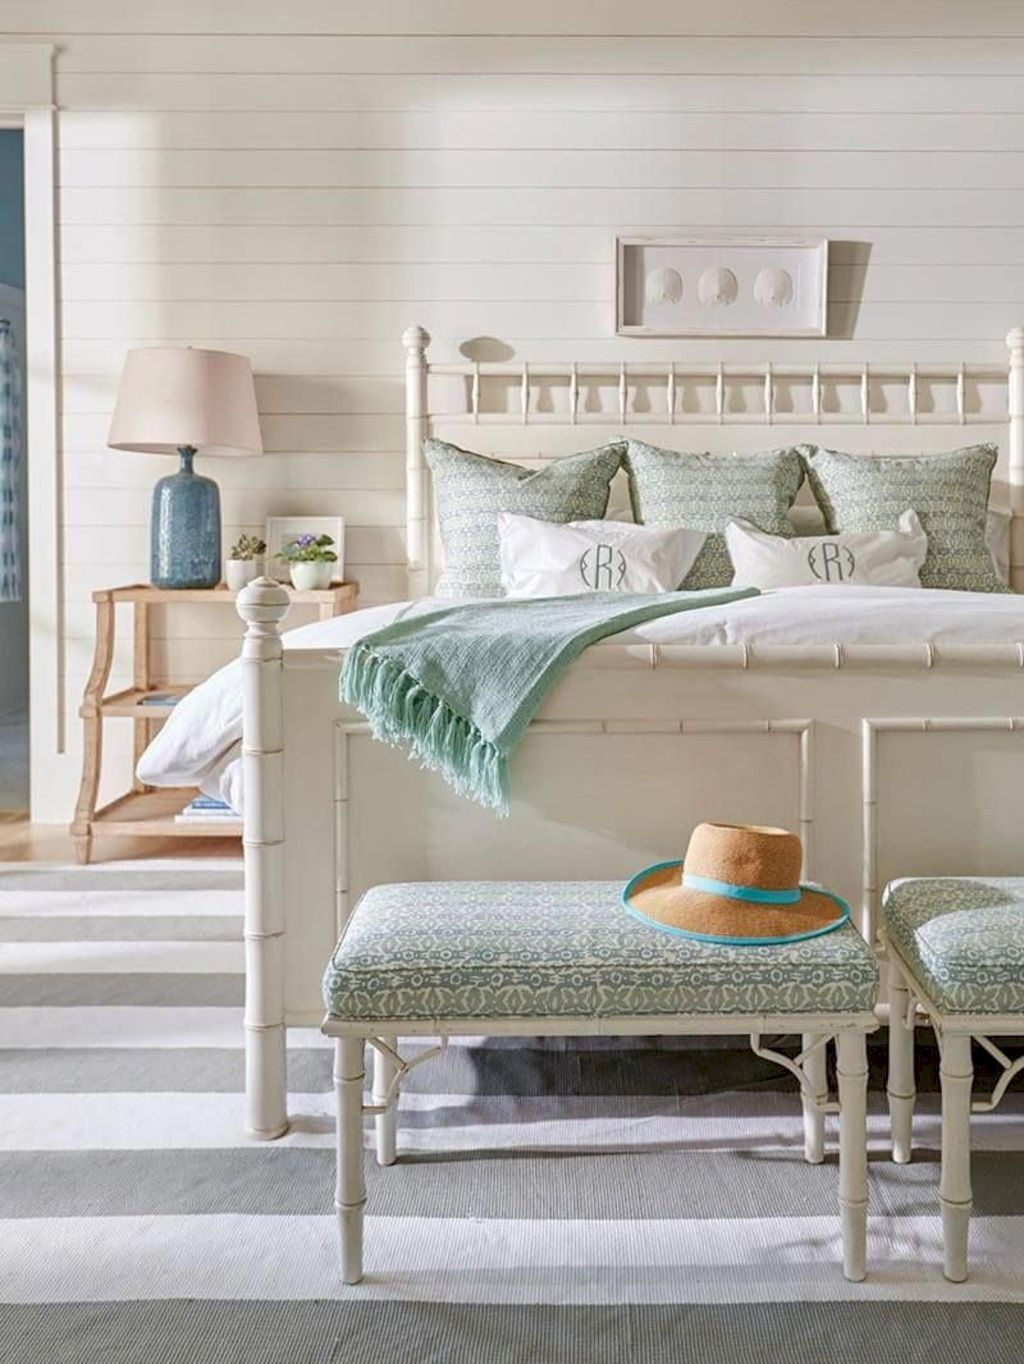 Refreshing home design with a coastal living theme and beach house style perfect inspirations for summer home updates Image 40